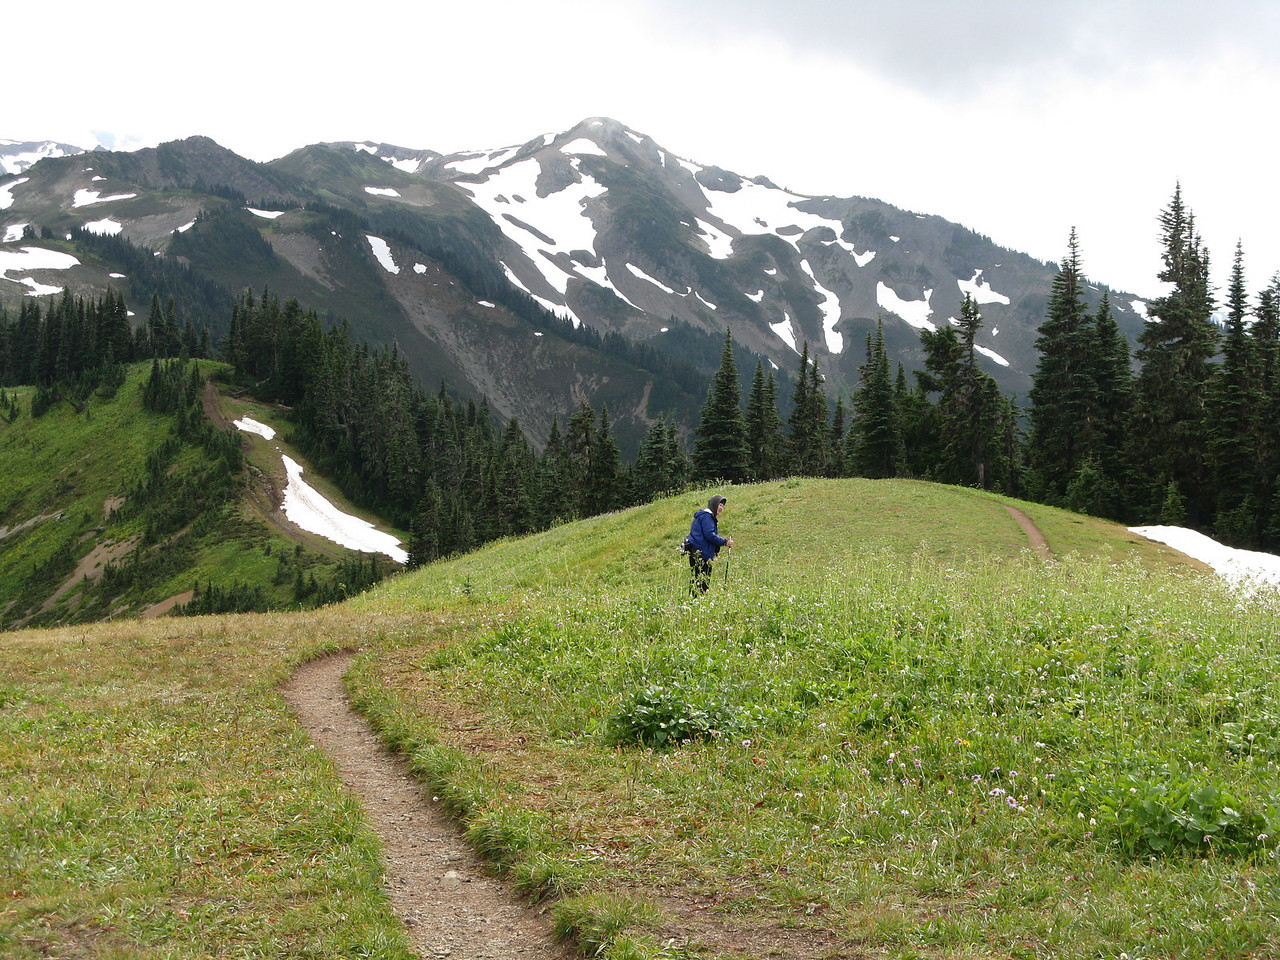 Mary in the meadow.  She has just turned to the right as she heads down the trail.